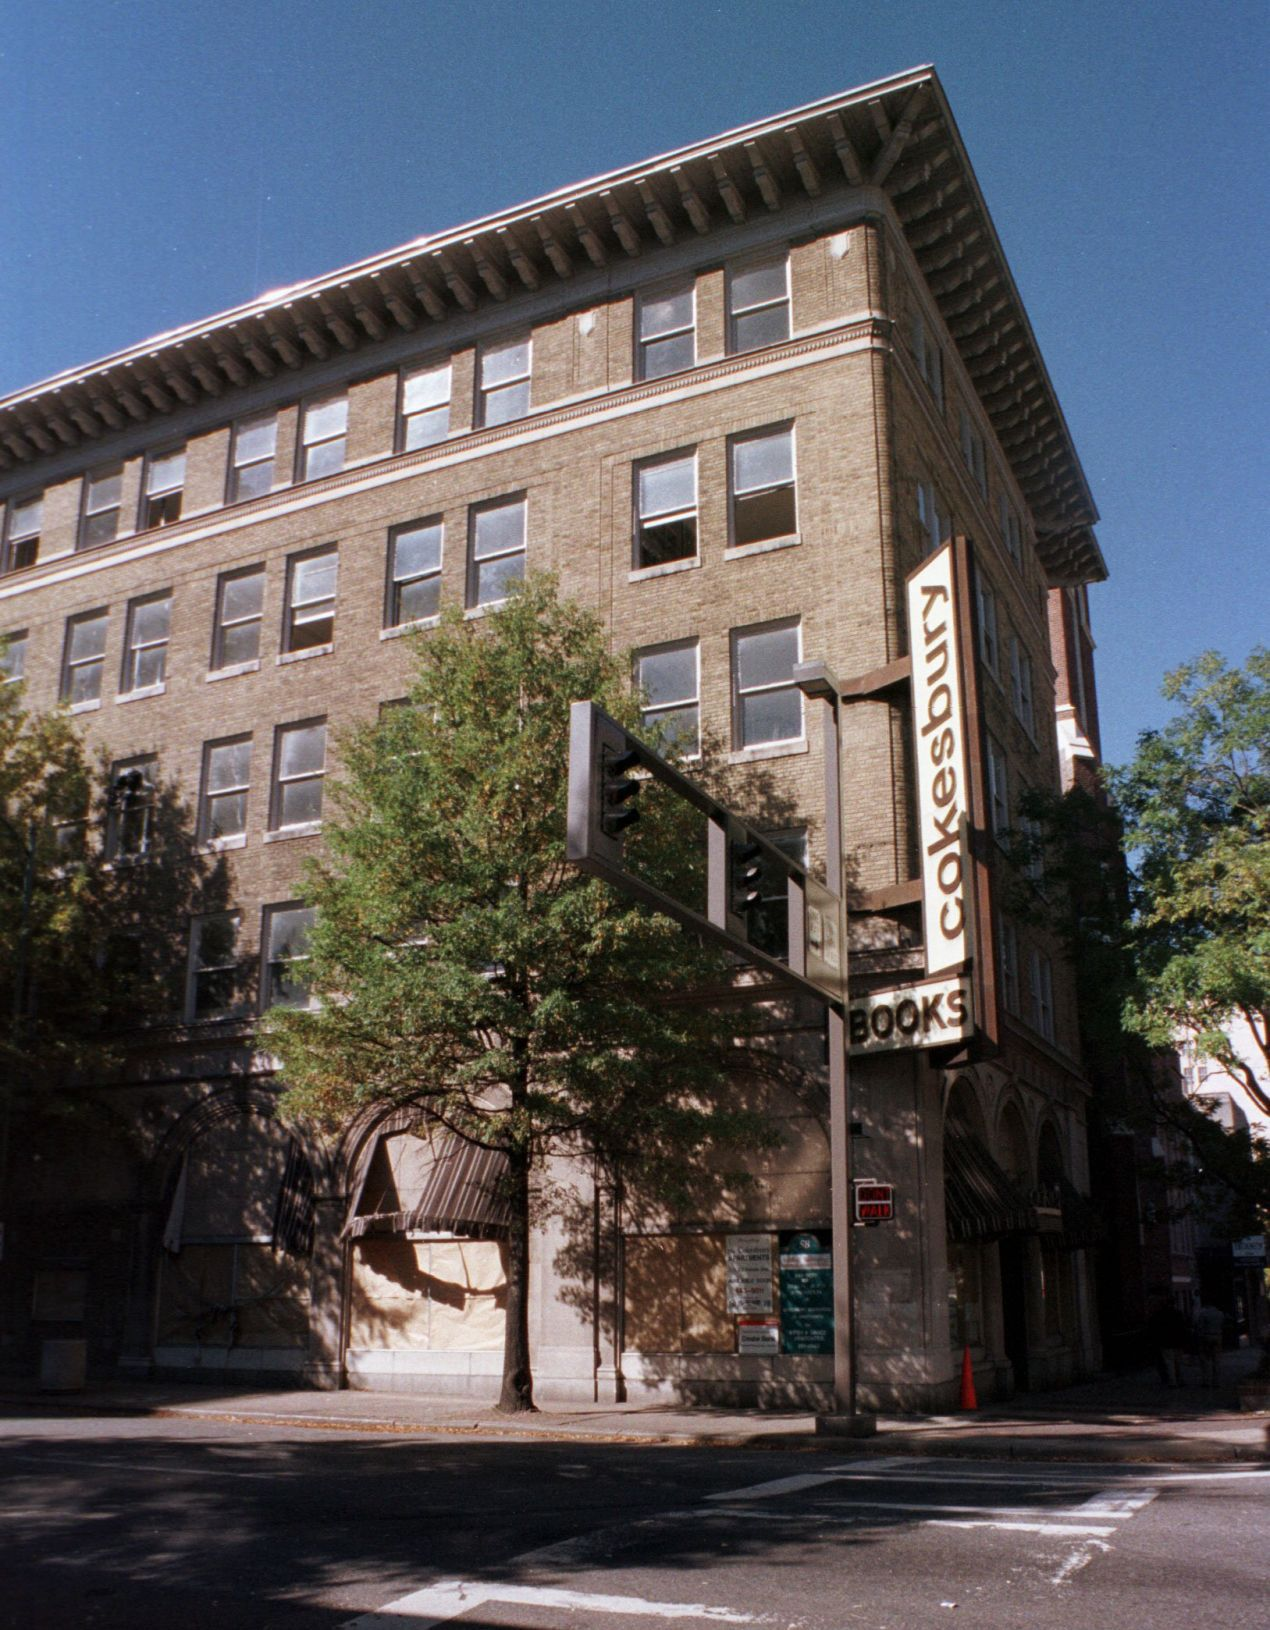 Architecture firm moving to Cokesbury building downtown Local